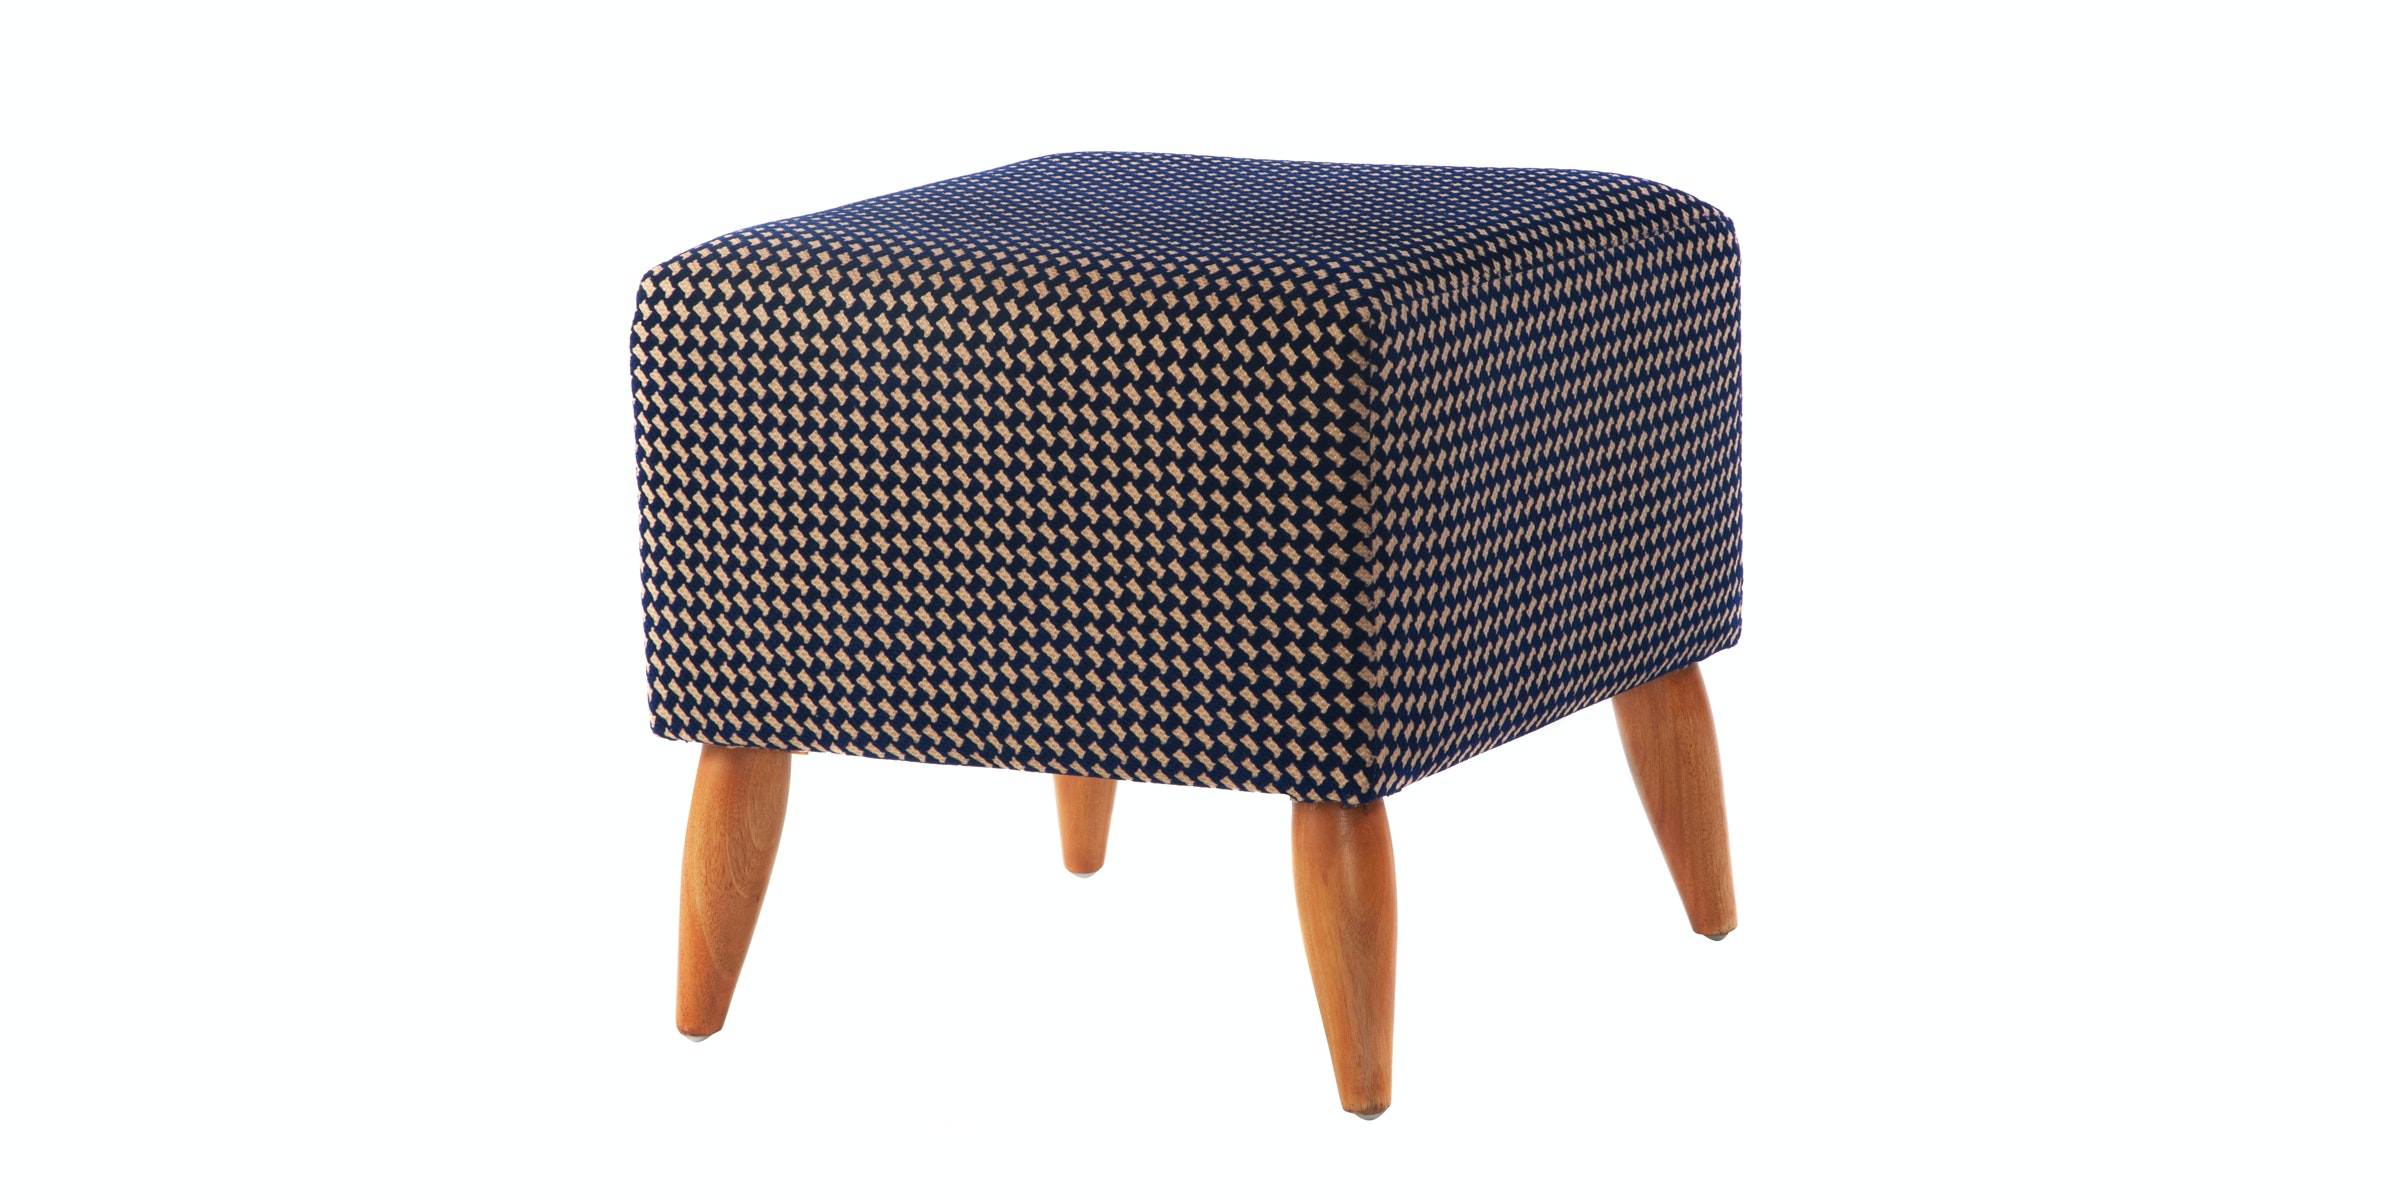 Seamus Furniture Houndstooth Square Stool